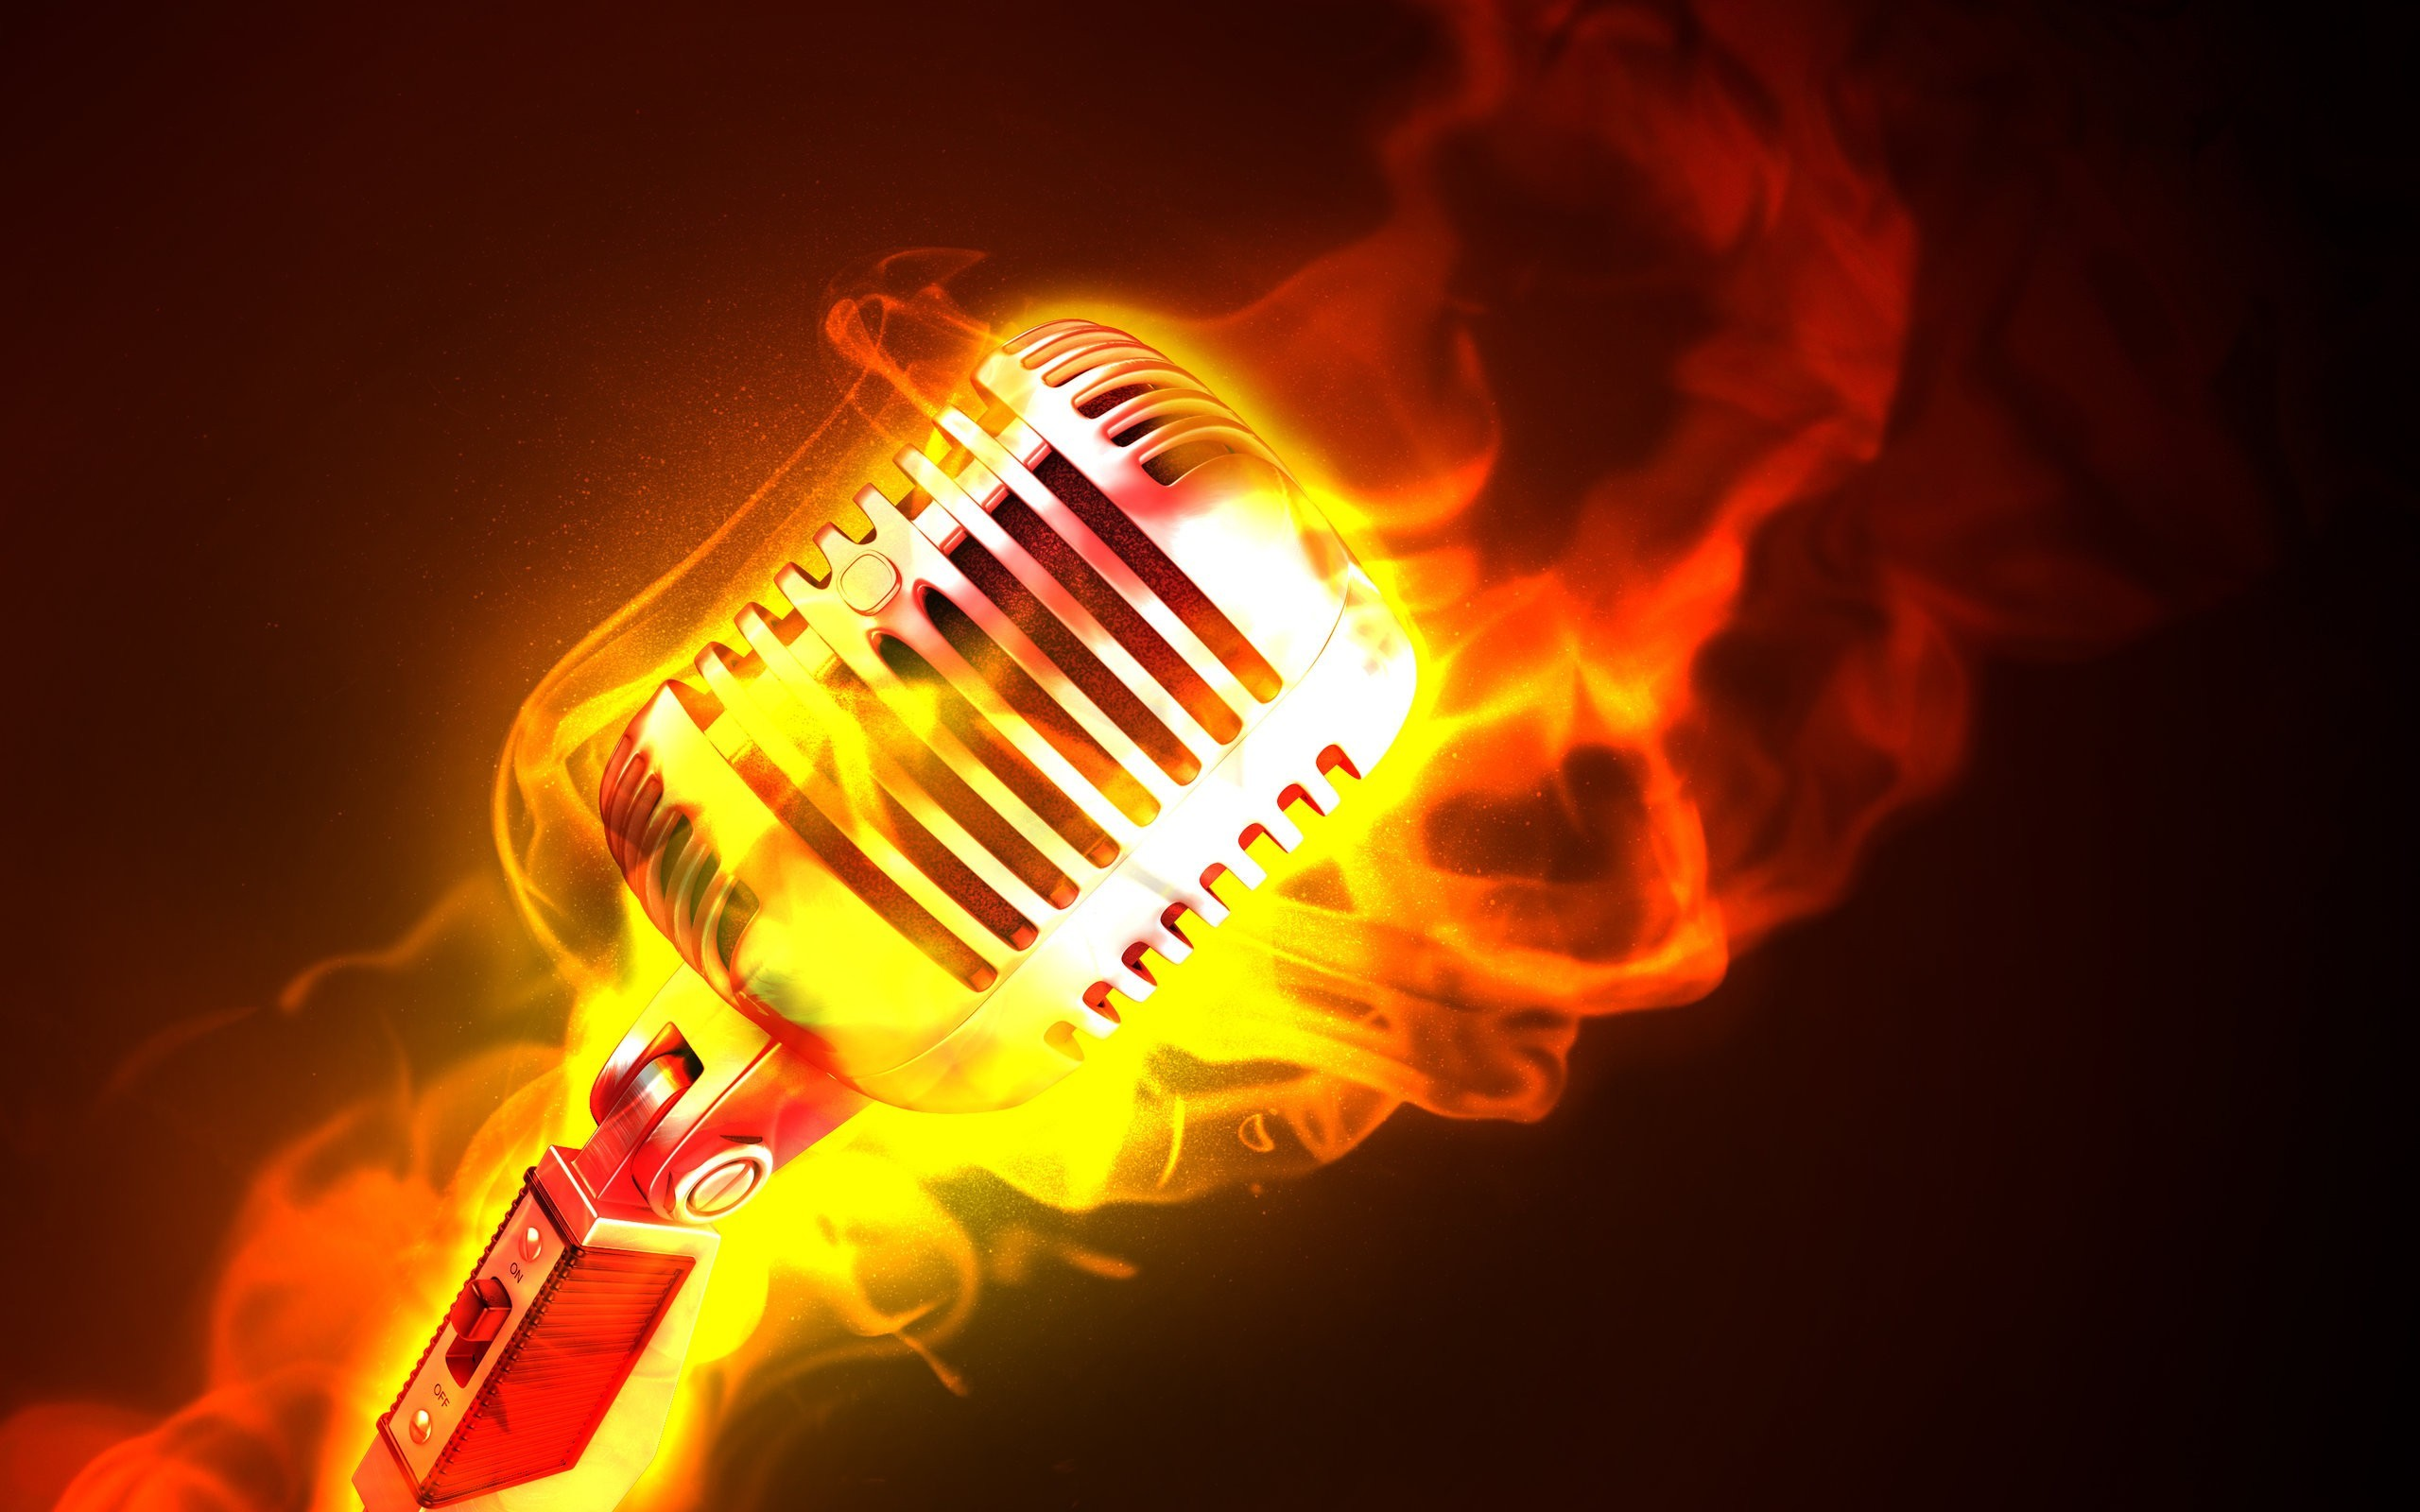 2560x1600 Fire Microphones Photomanipulations At 3d Wallpapers